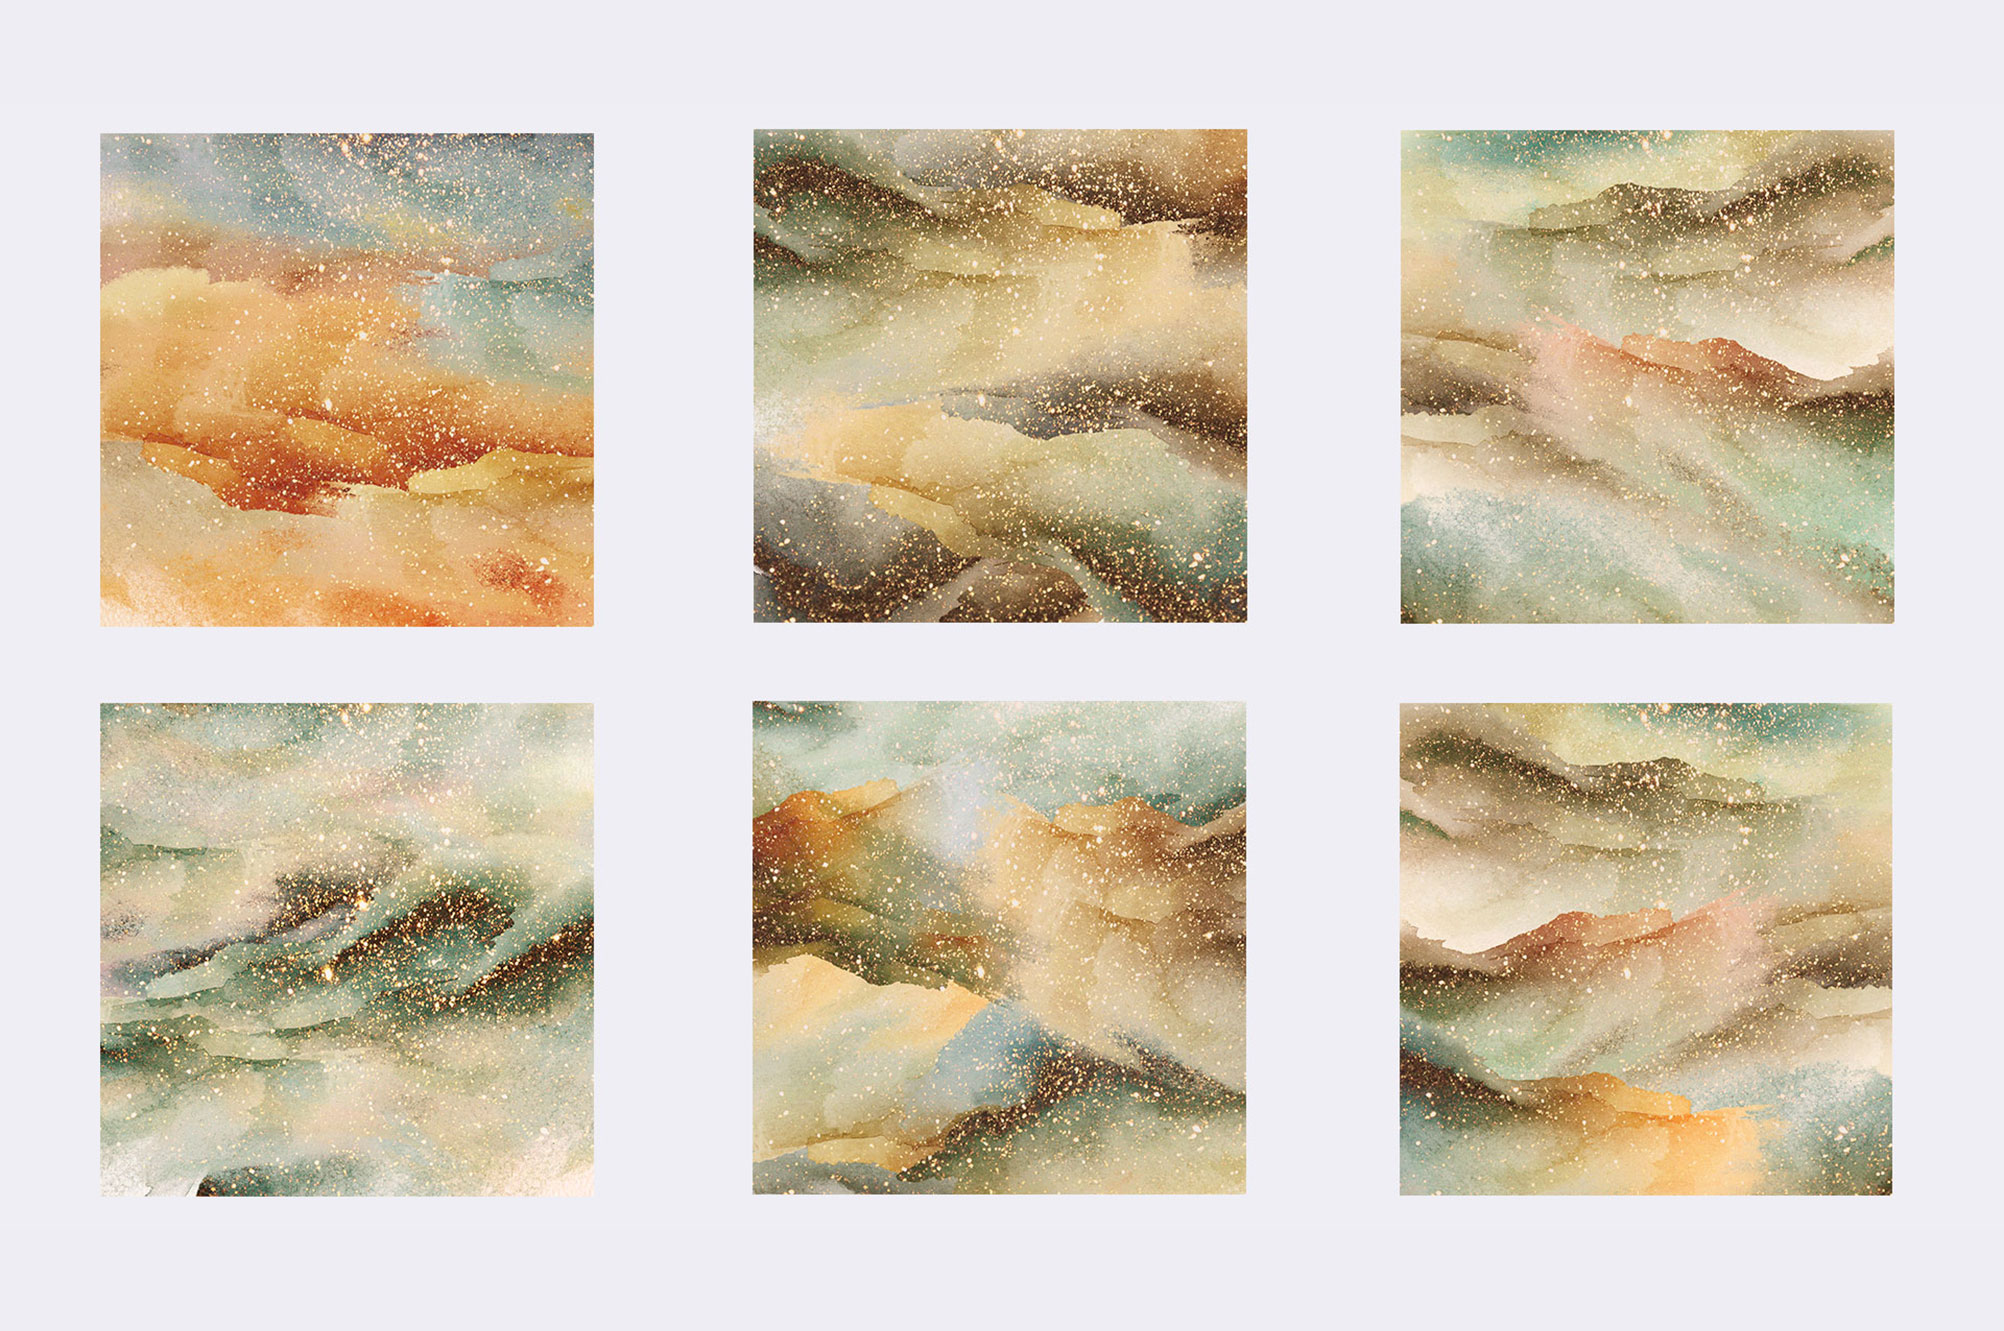 Abstract Watercolor Background 2